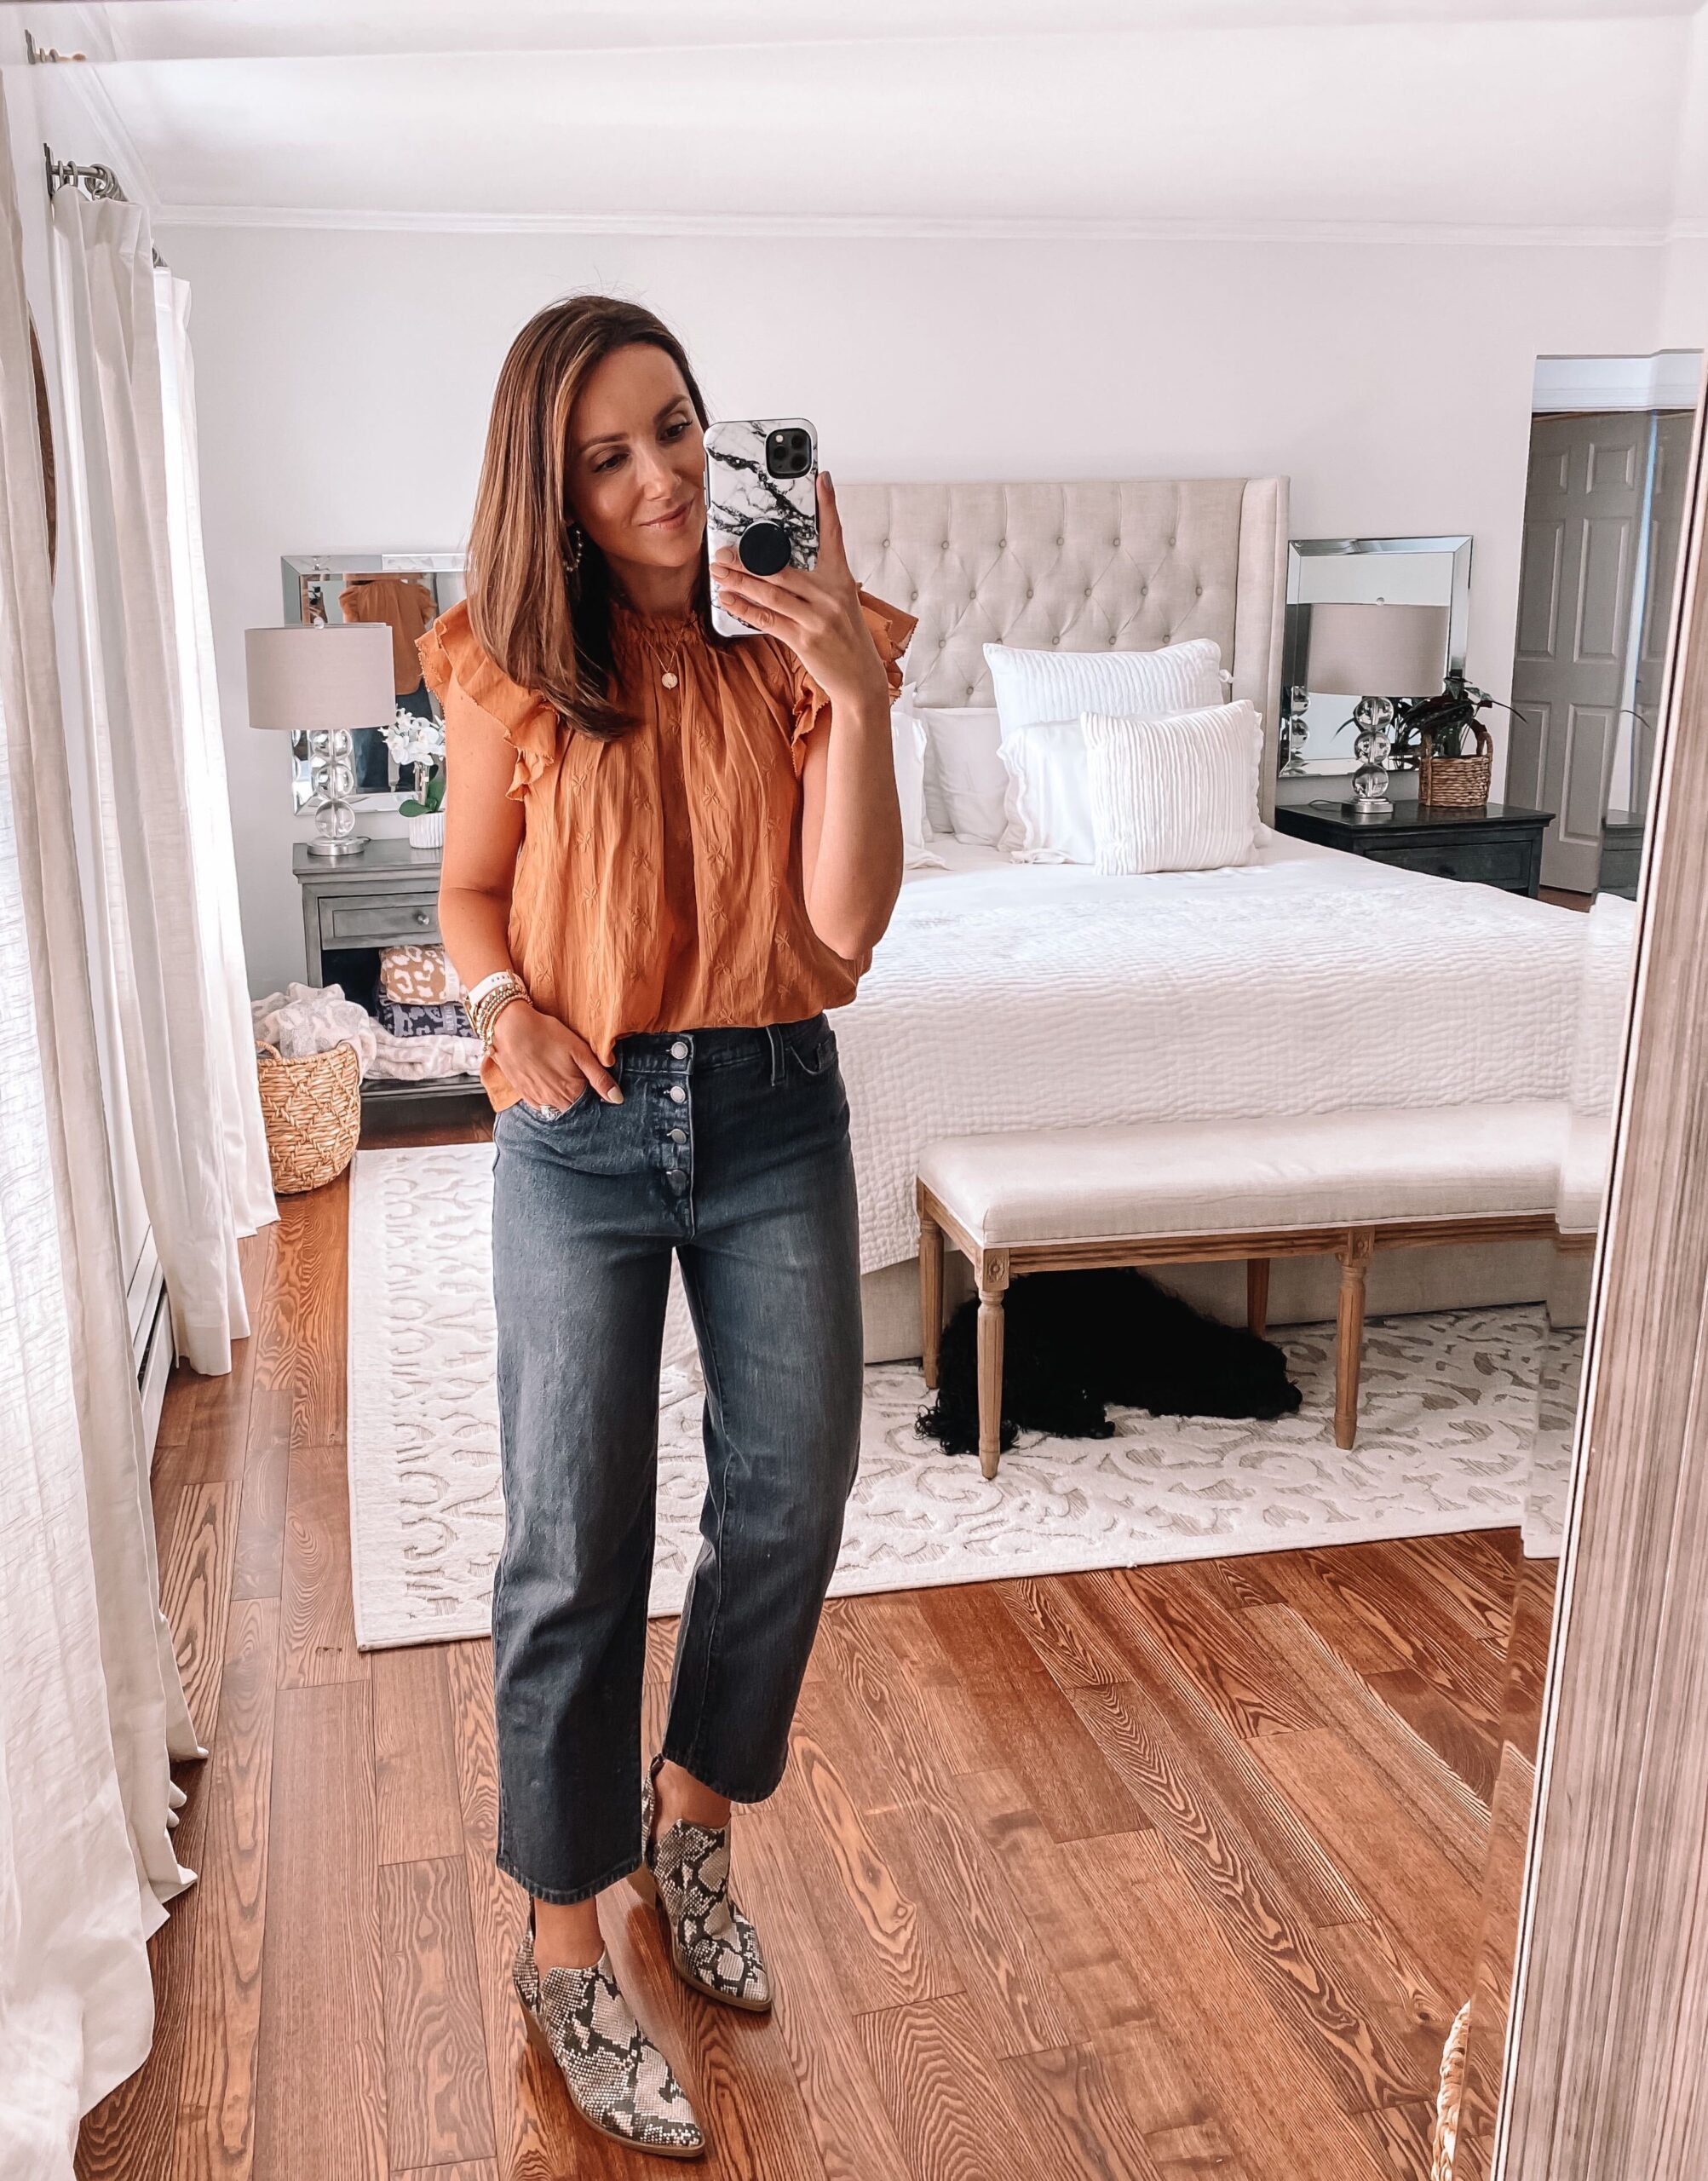 target finds, target blouse, button fly jeans, snakeskin booties